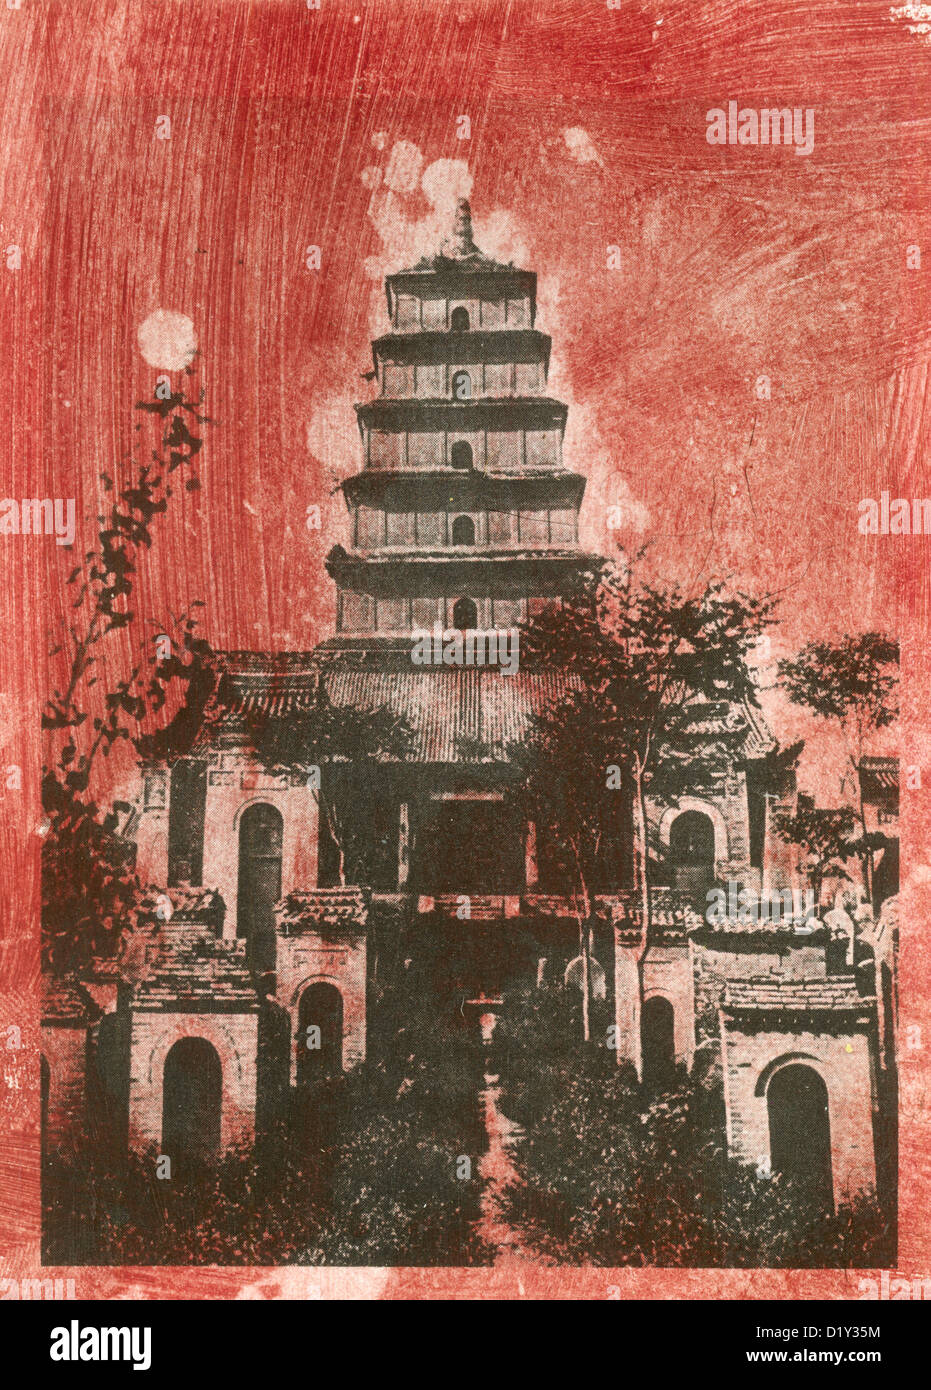 Traditional Japanese Pagoda stained mixed media print. - Stock Image